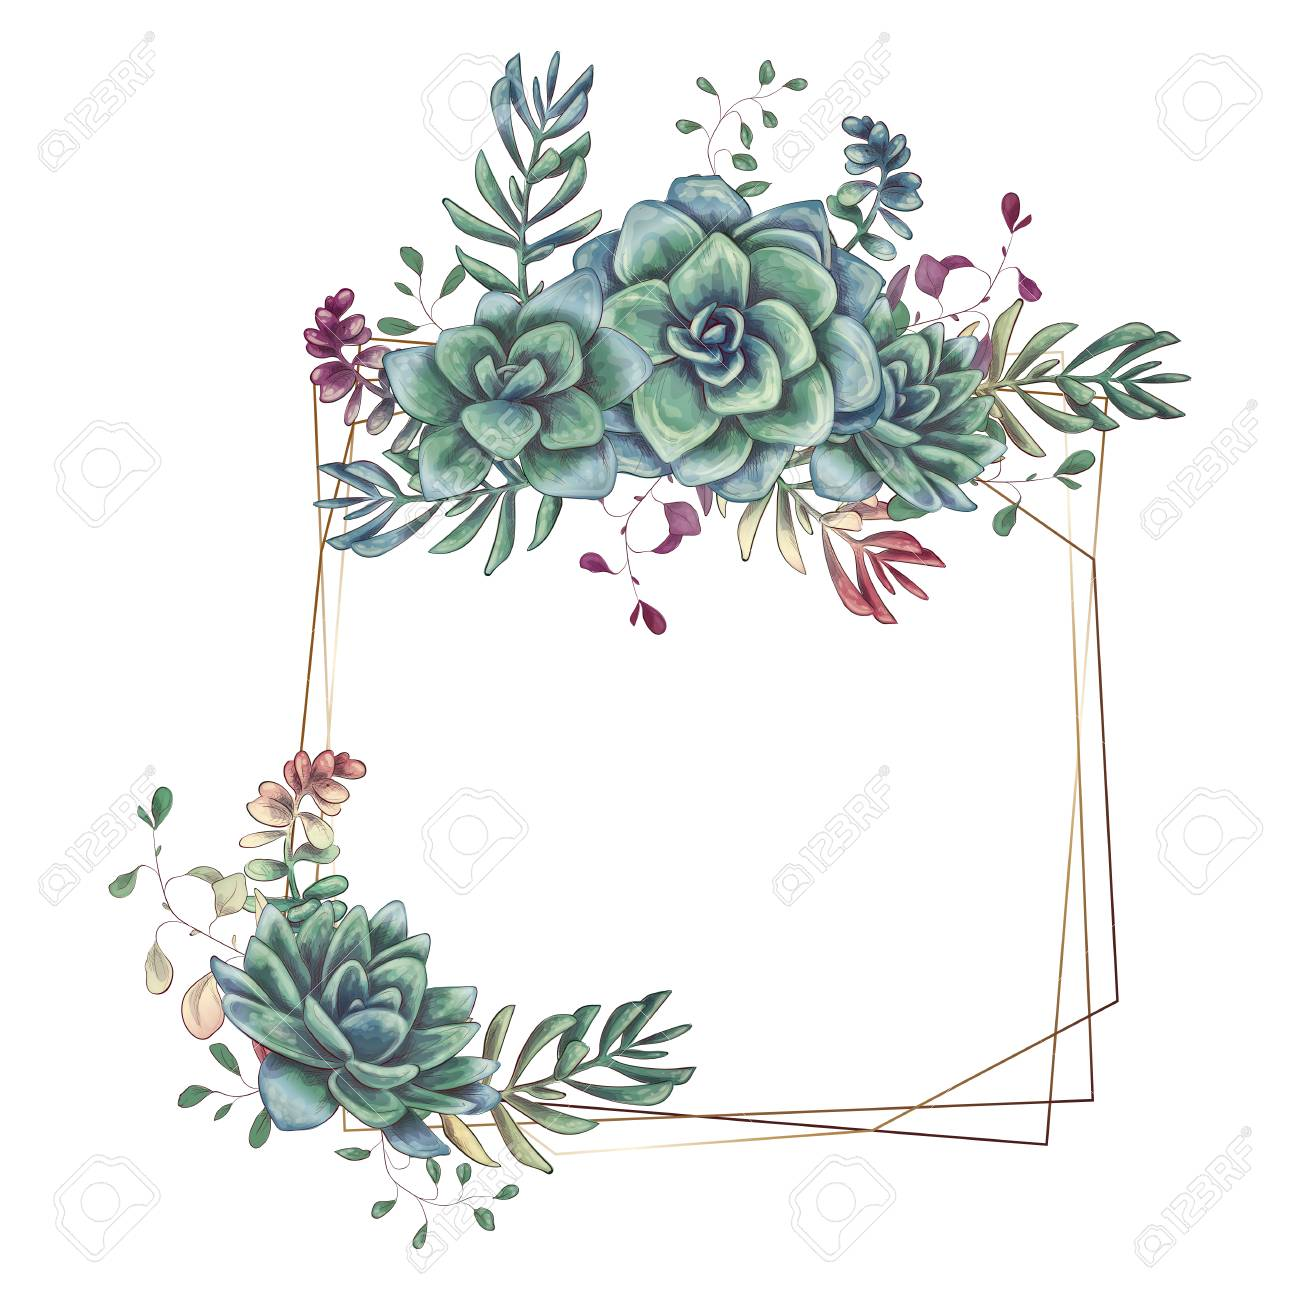 Wedding Photo Frames.Festive Wedding Frames With Colorful Succulents Beautiful Plants